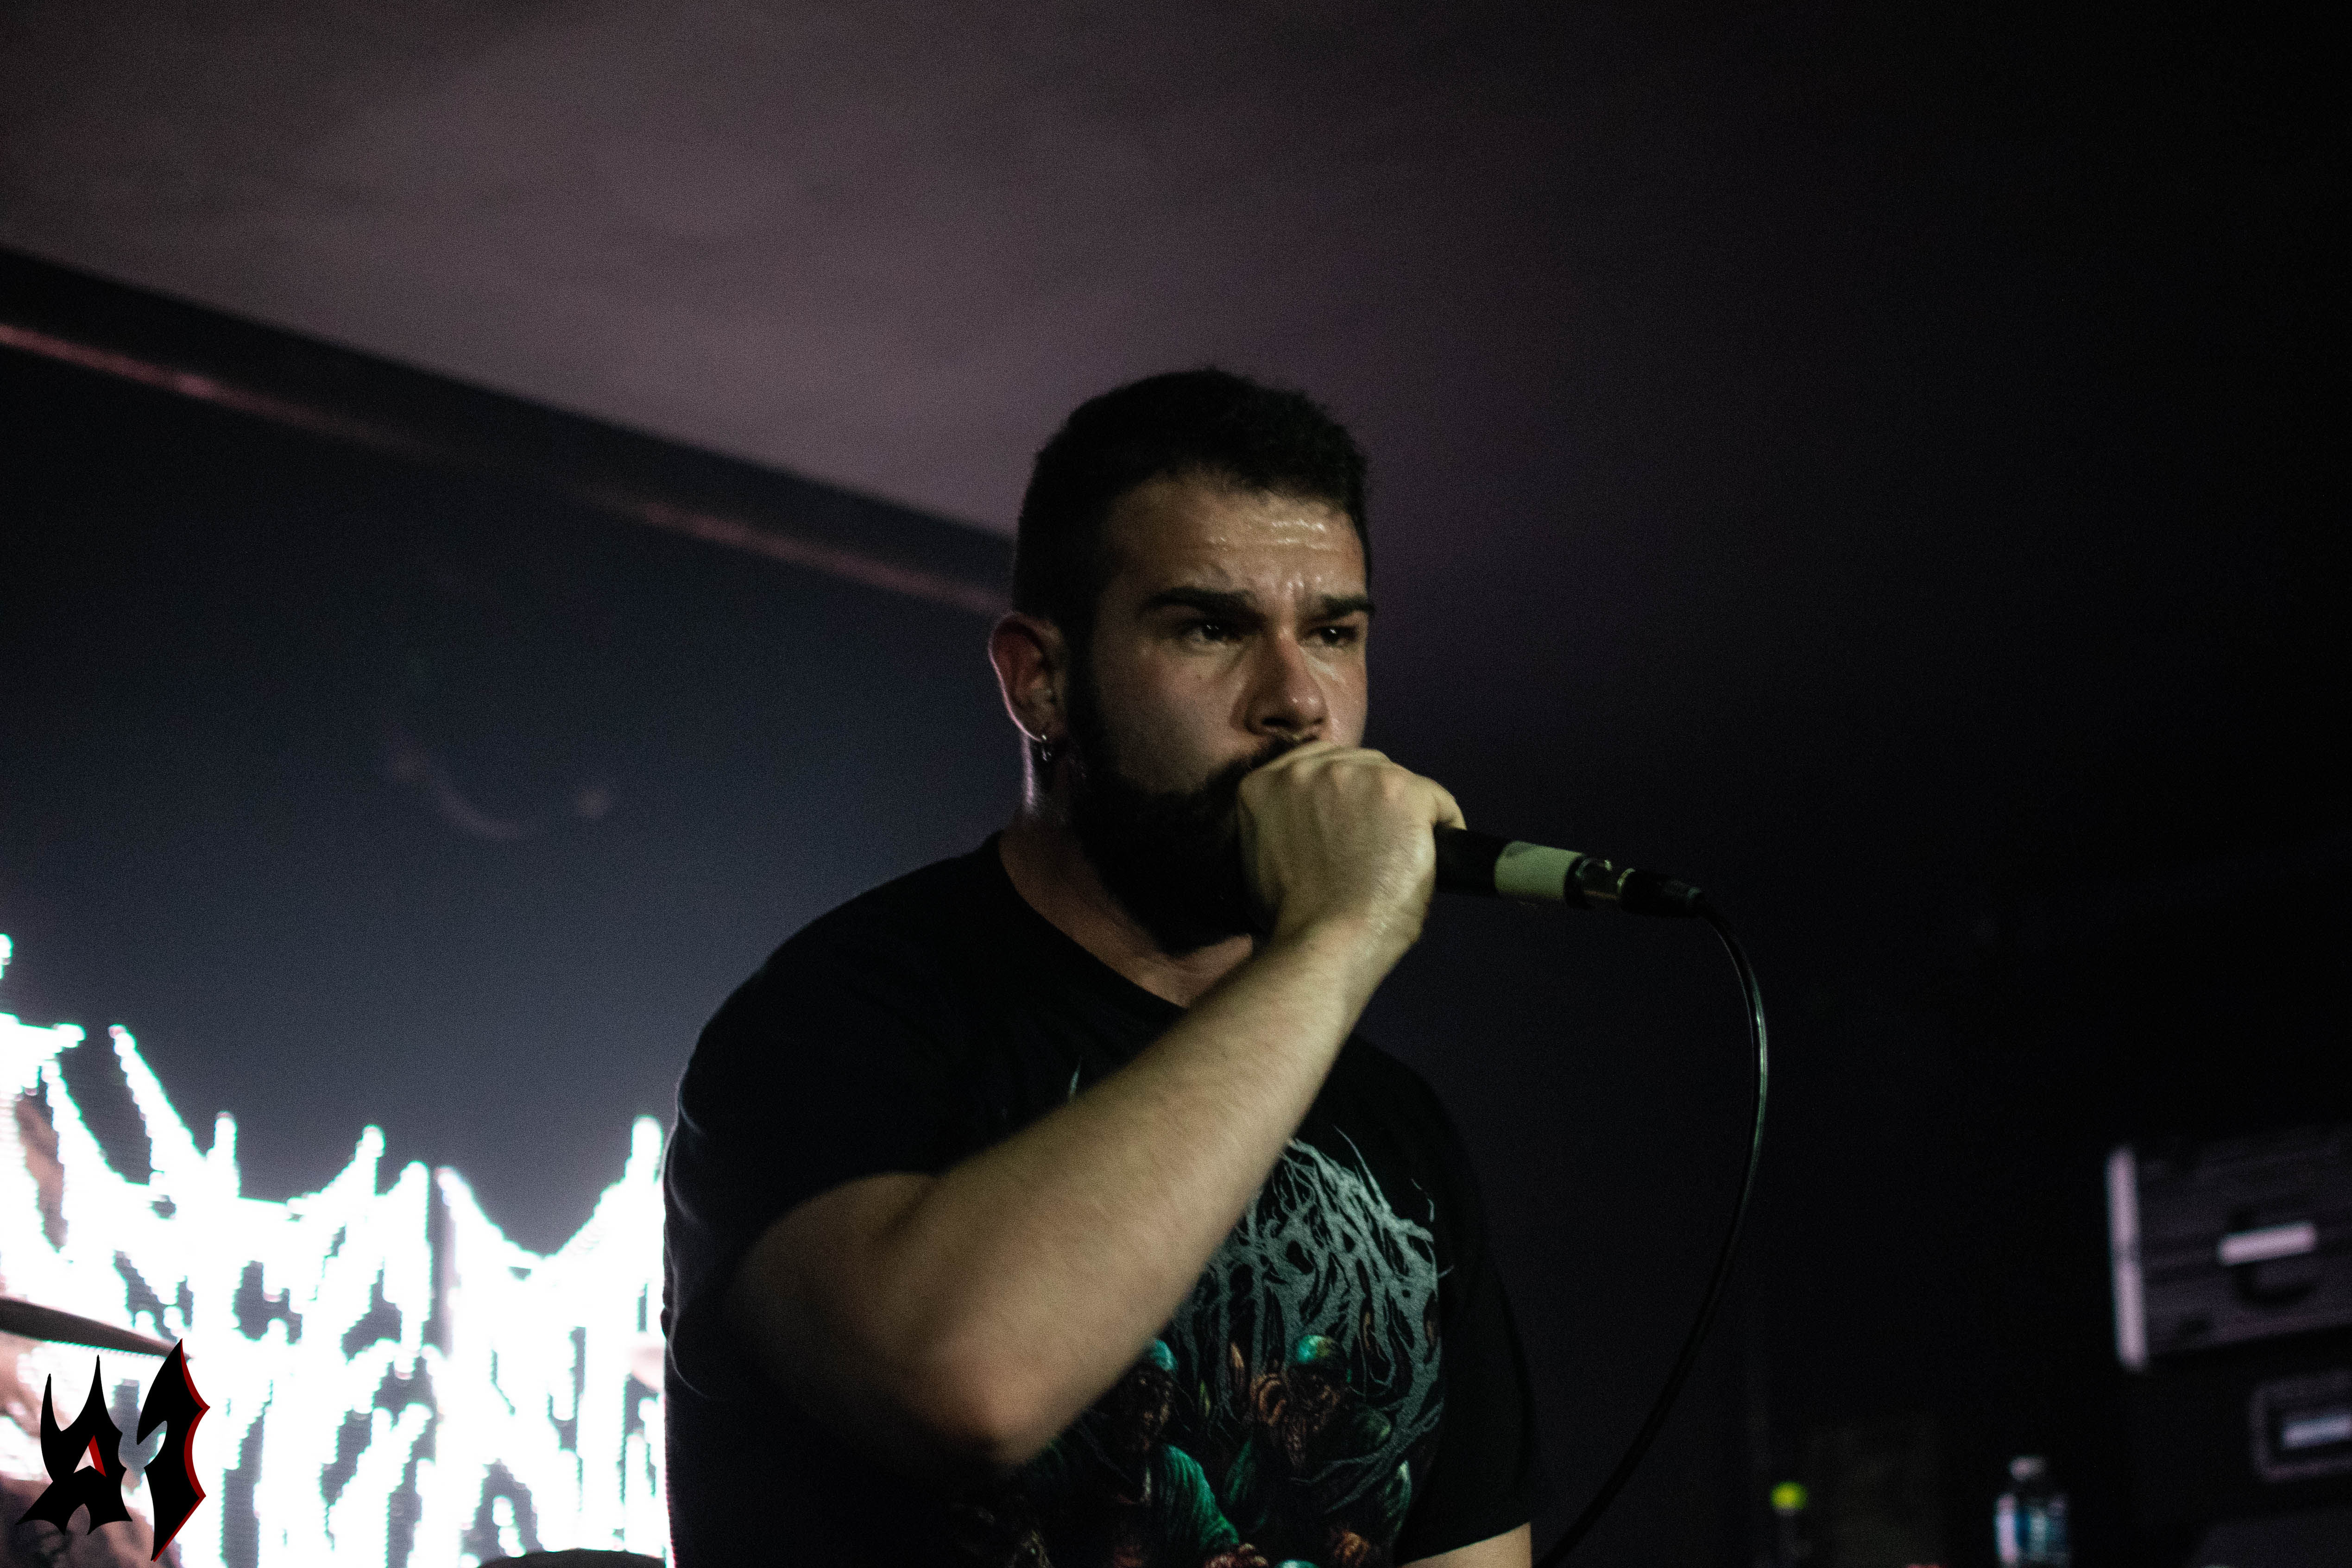 Defeated Sanity - 3